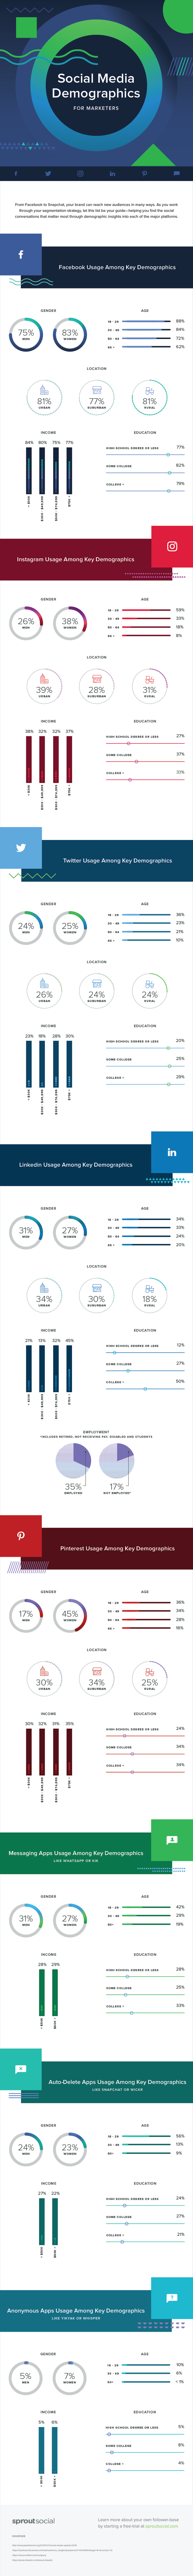 Social Media Demographics from Sprout Social